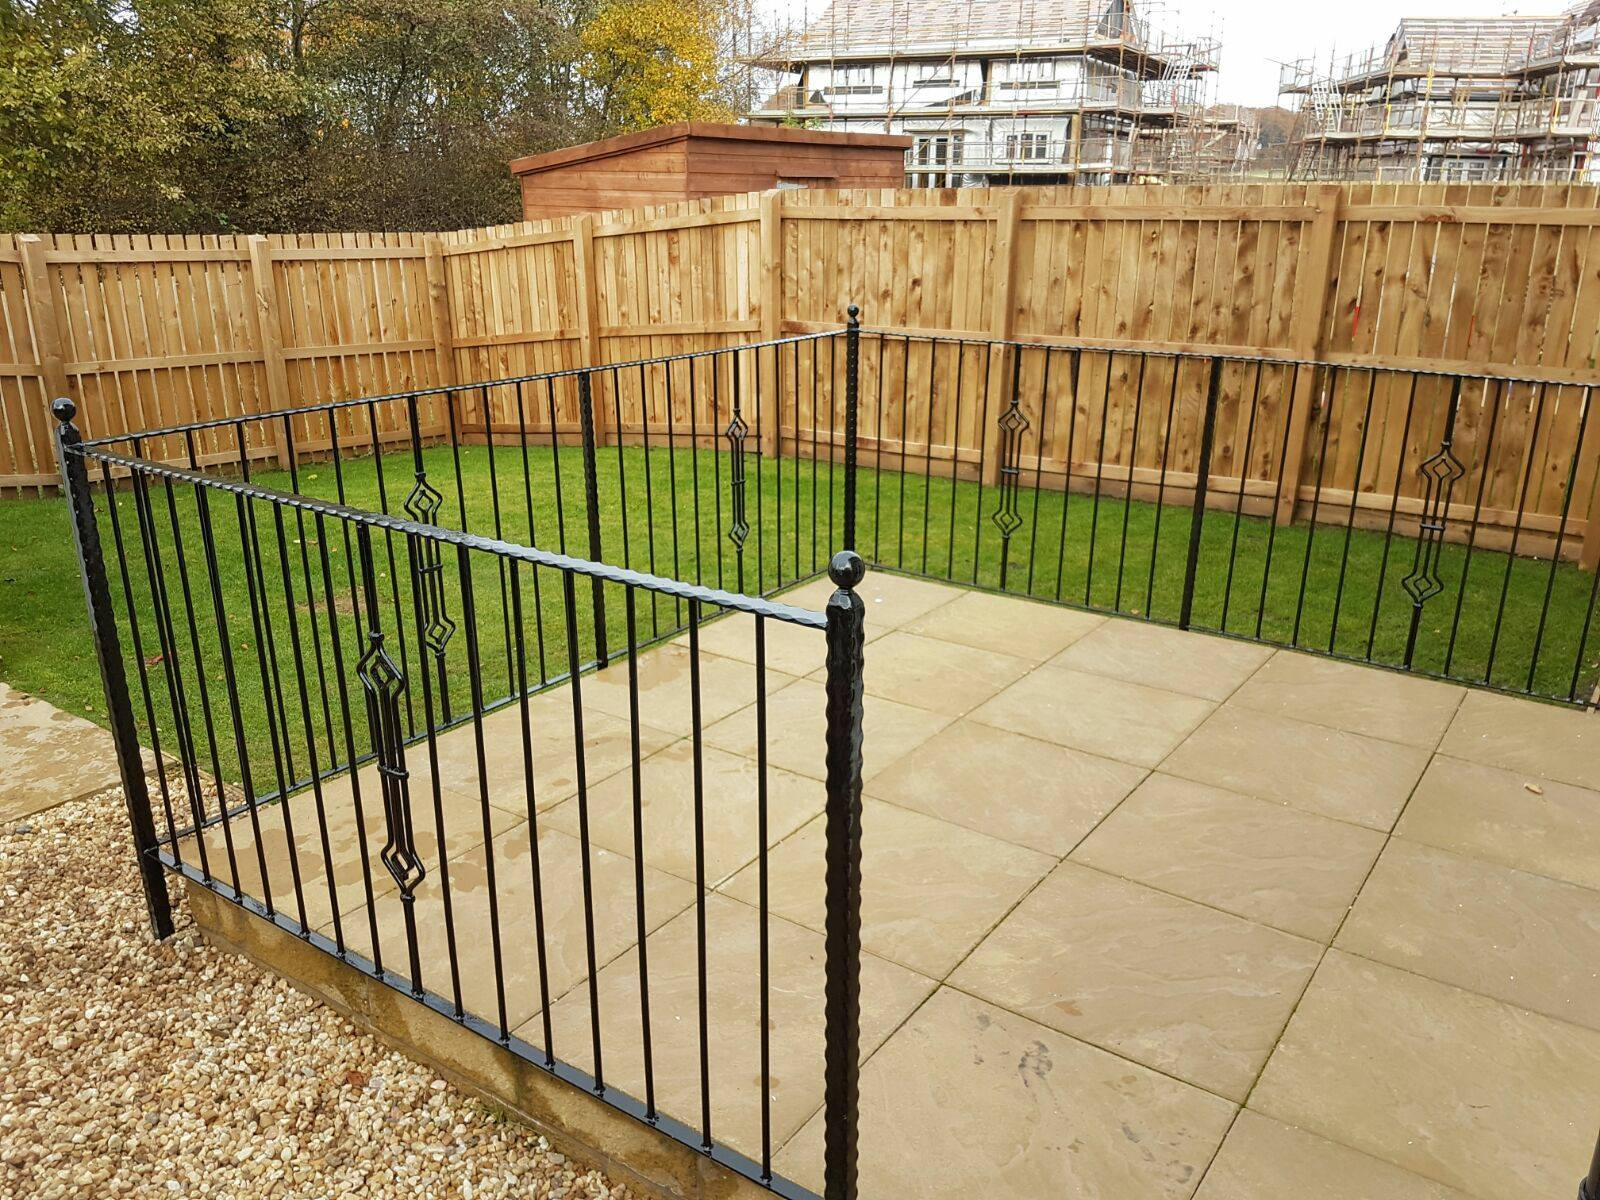 These beautiful black metal railings with diamond motif and twisted metal handrail design provide a stylish finish to their patio in their beautiful garden in Stewarton, Ayrshire.